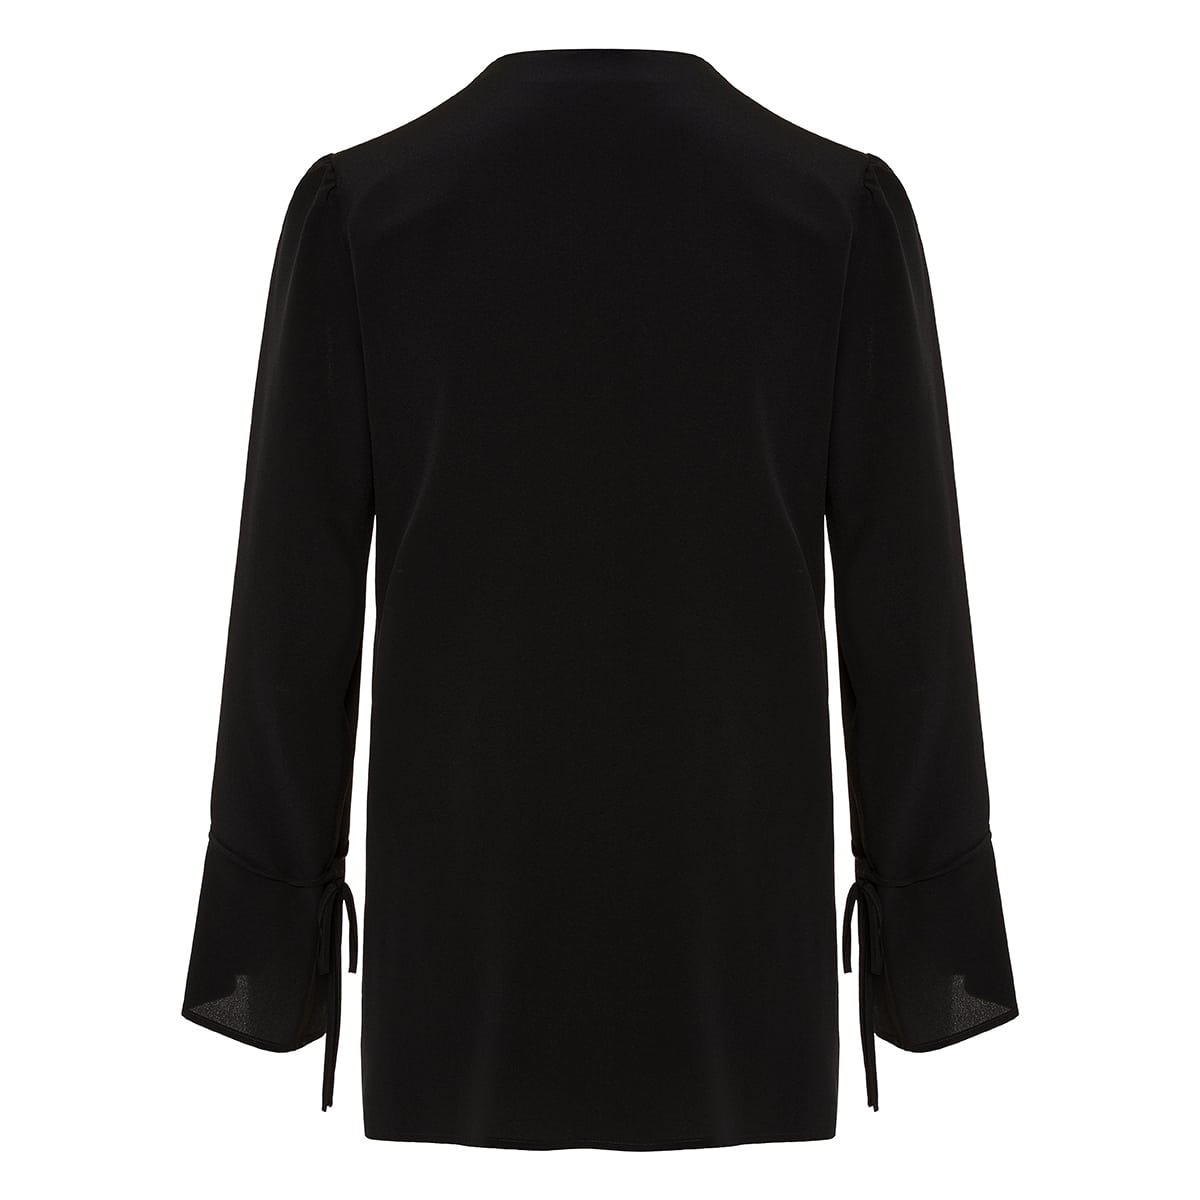 Silk blouse with ties